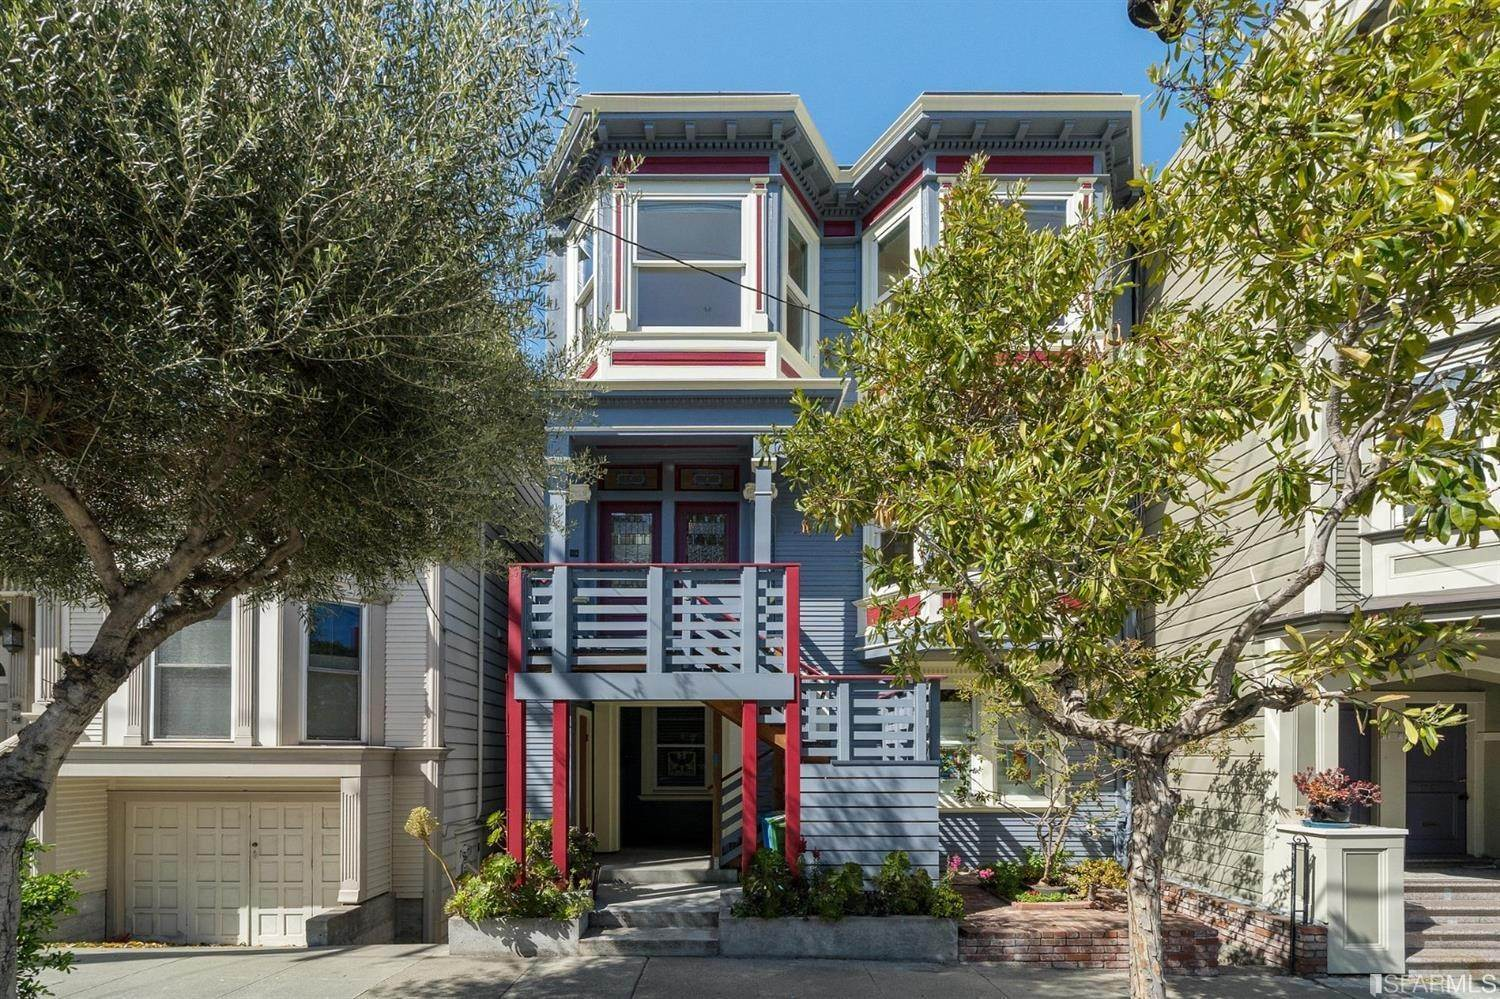 Tenancy In Common for Sale at 1114 18th Street San Francisco, California 94107 United States